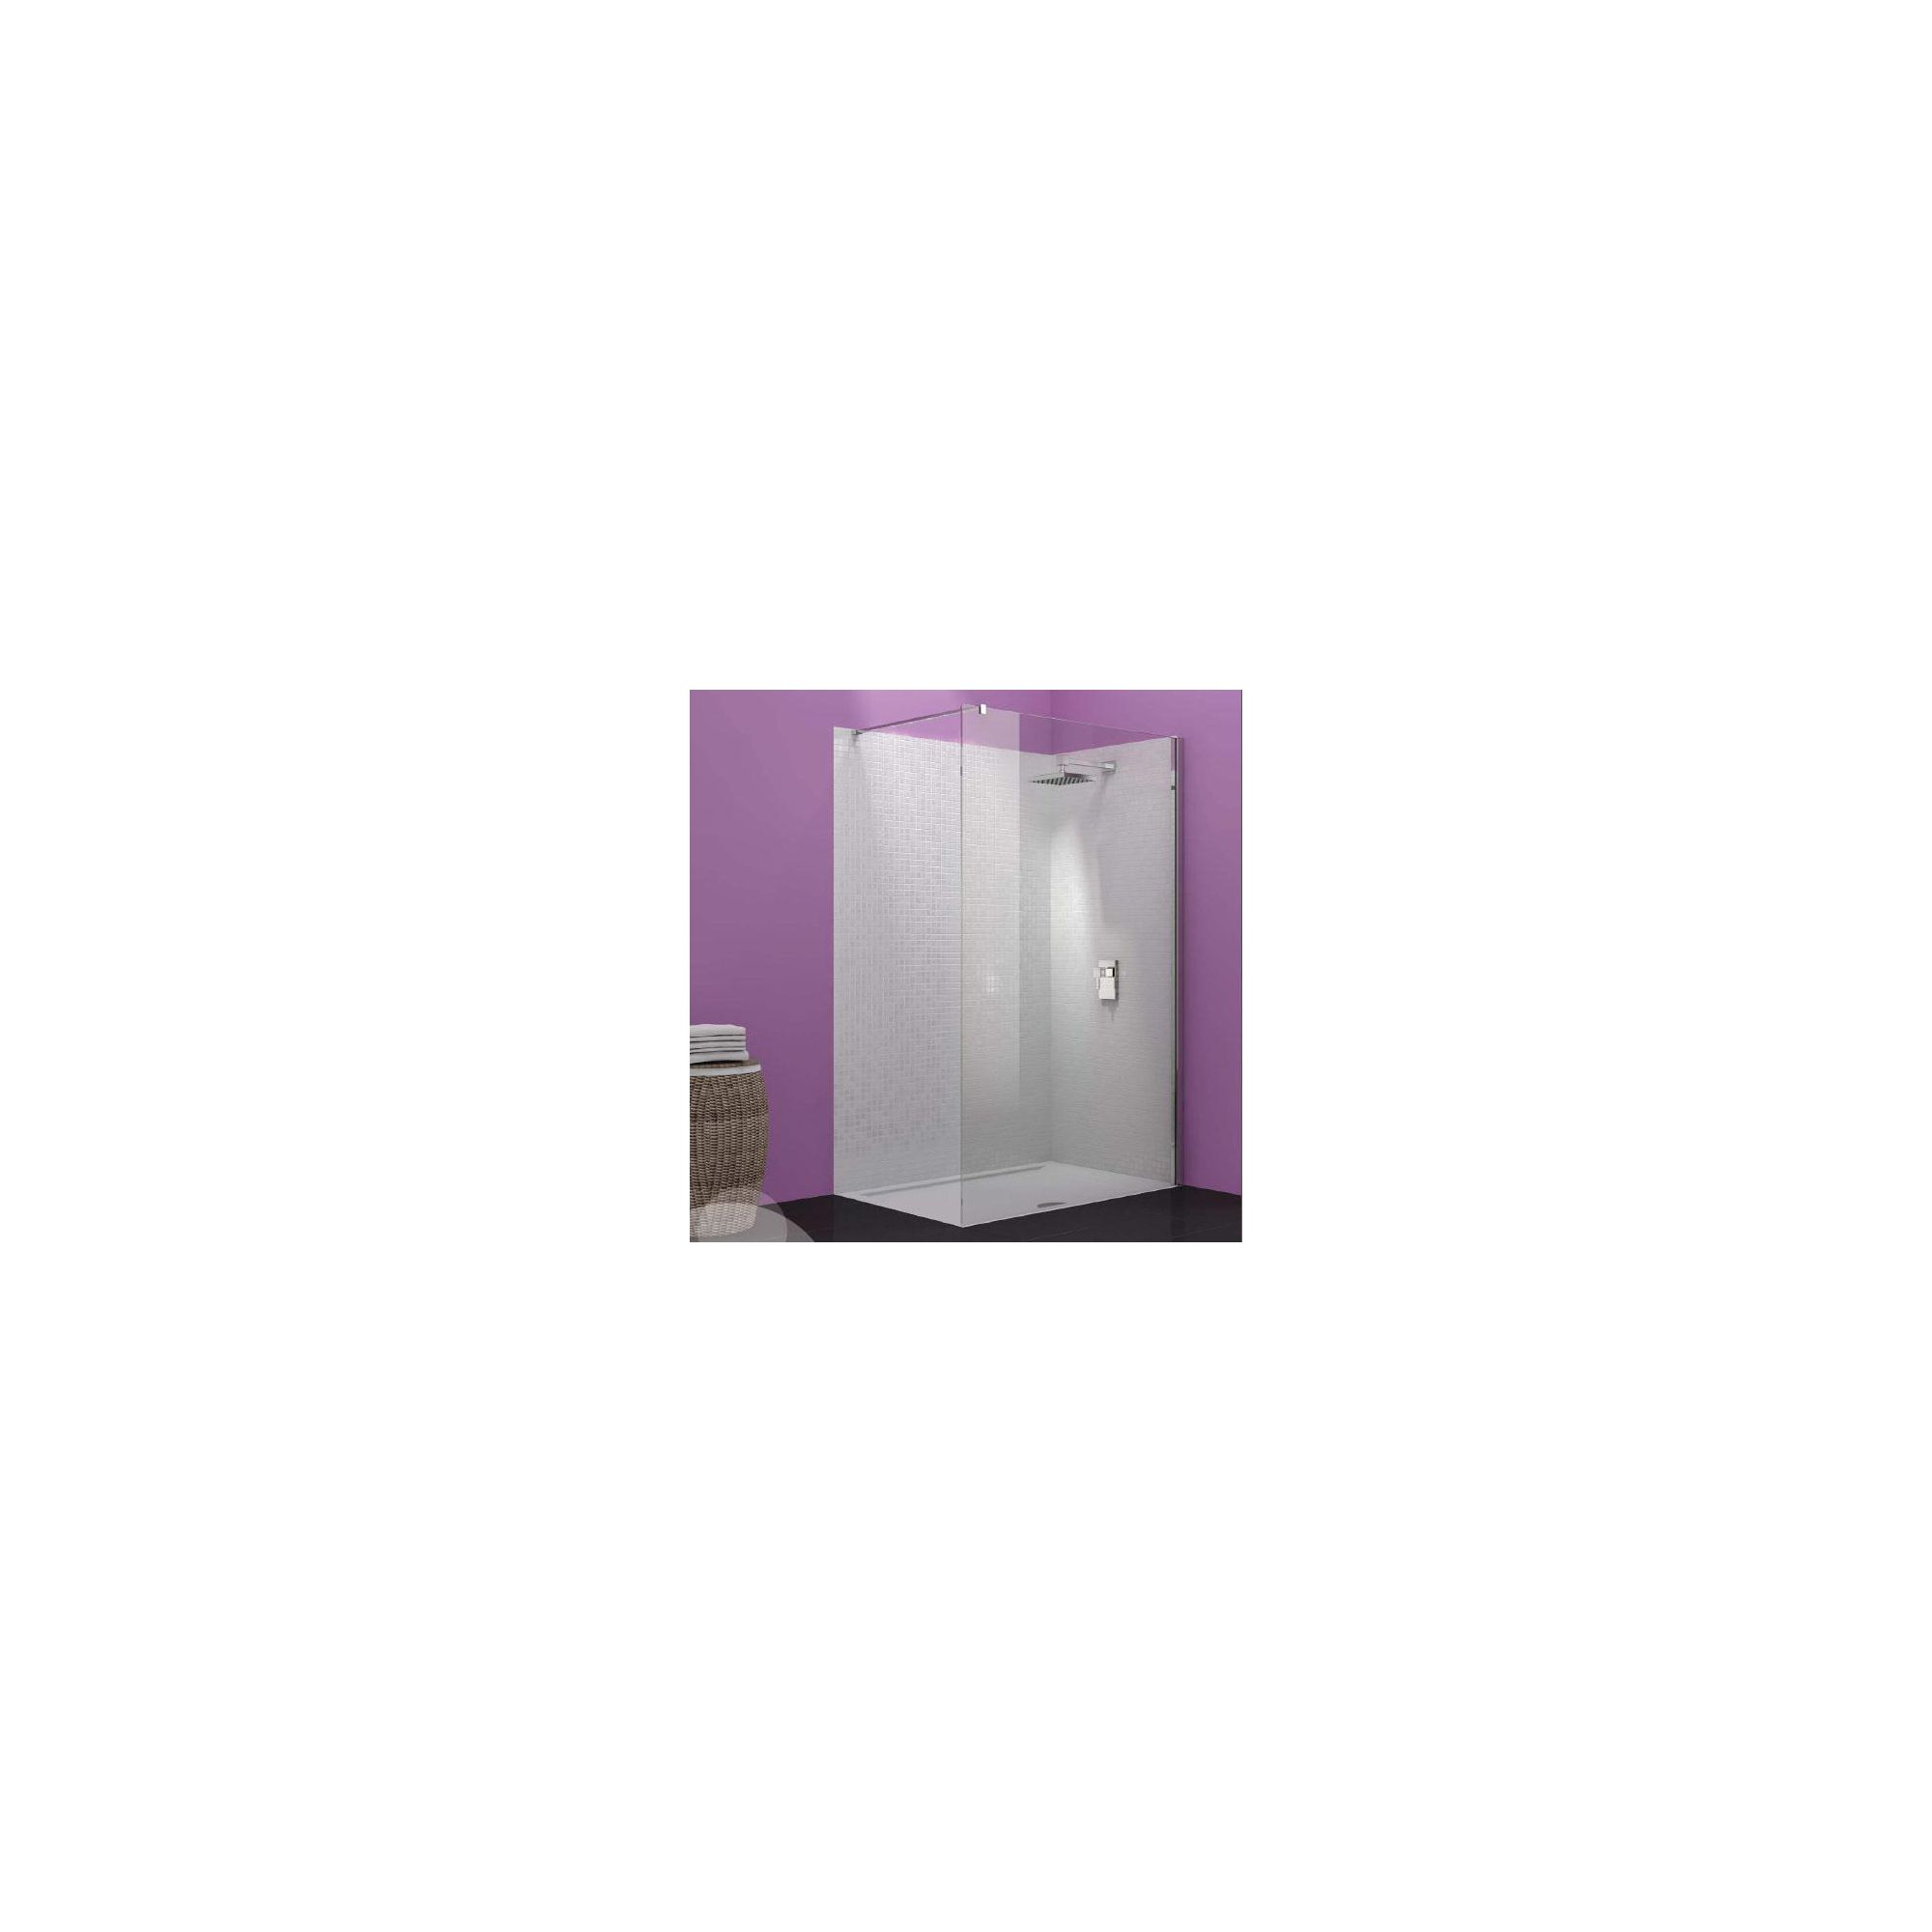 Merlyn Vivid Ten Wet Room Shower Enclosure, 1000mm x 800mm, Low Profile Tray, 10mm Glass at Tesco Direct